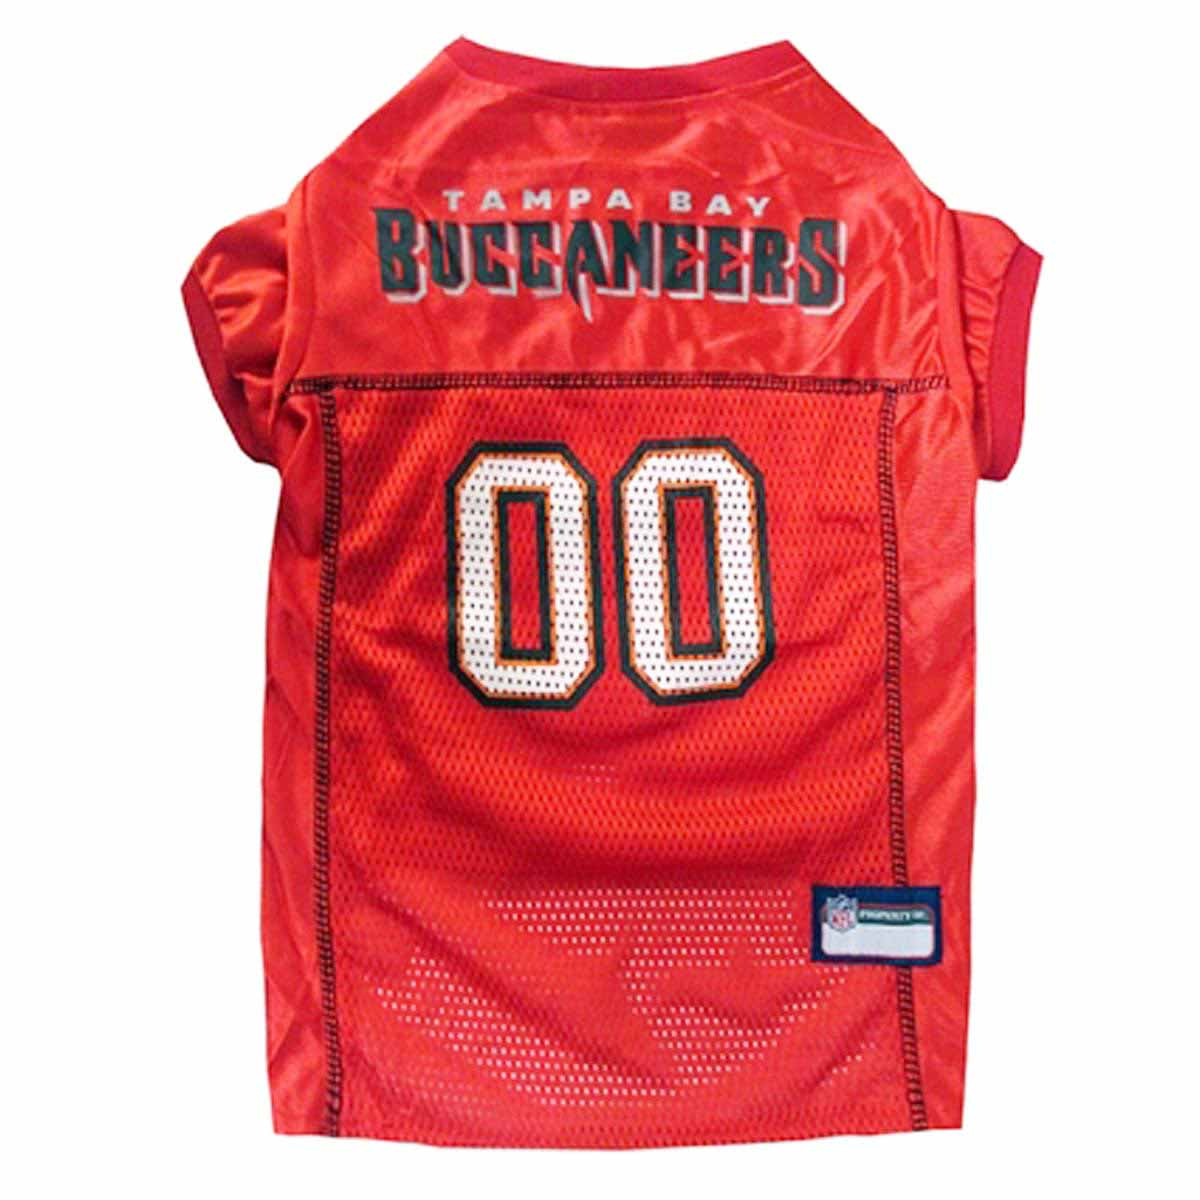 Tampa Bay Buccaneers Officially Licensed Dog Jersey